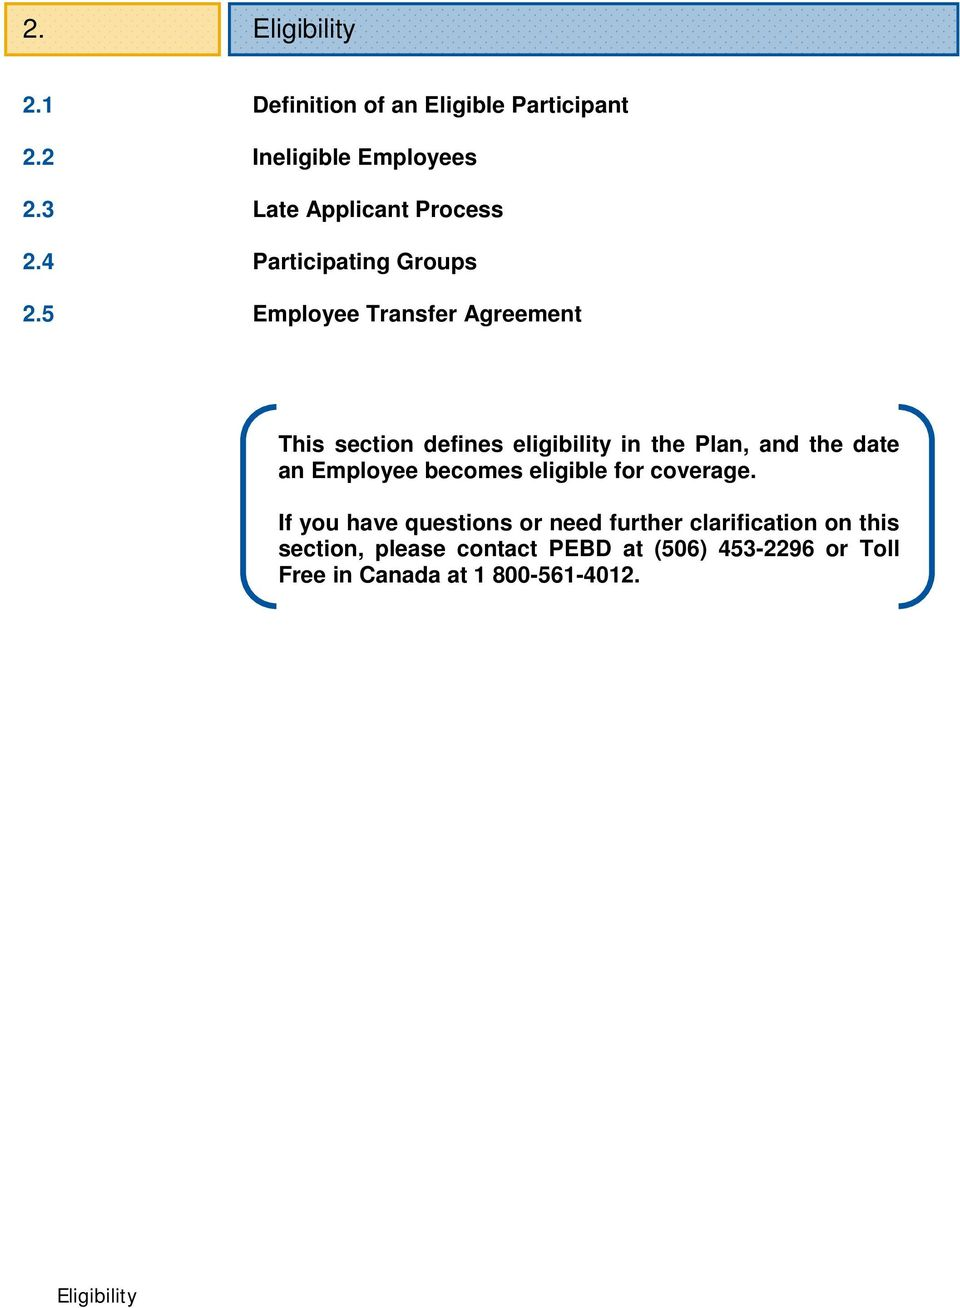 Employee Transfer Agreement This section defines eligibility in the Plan, and the date an Employee becomes